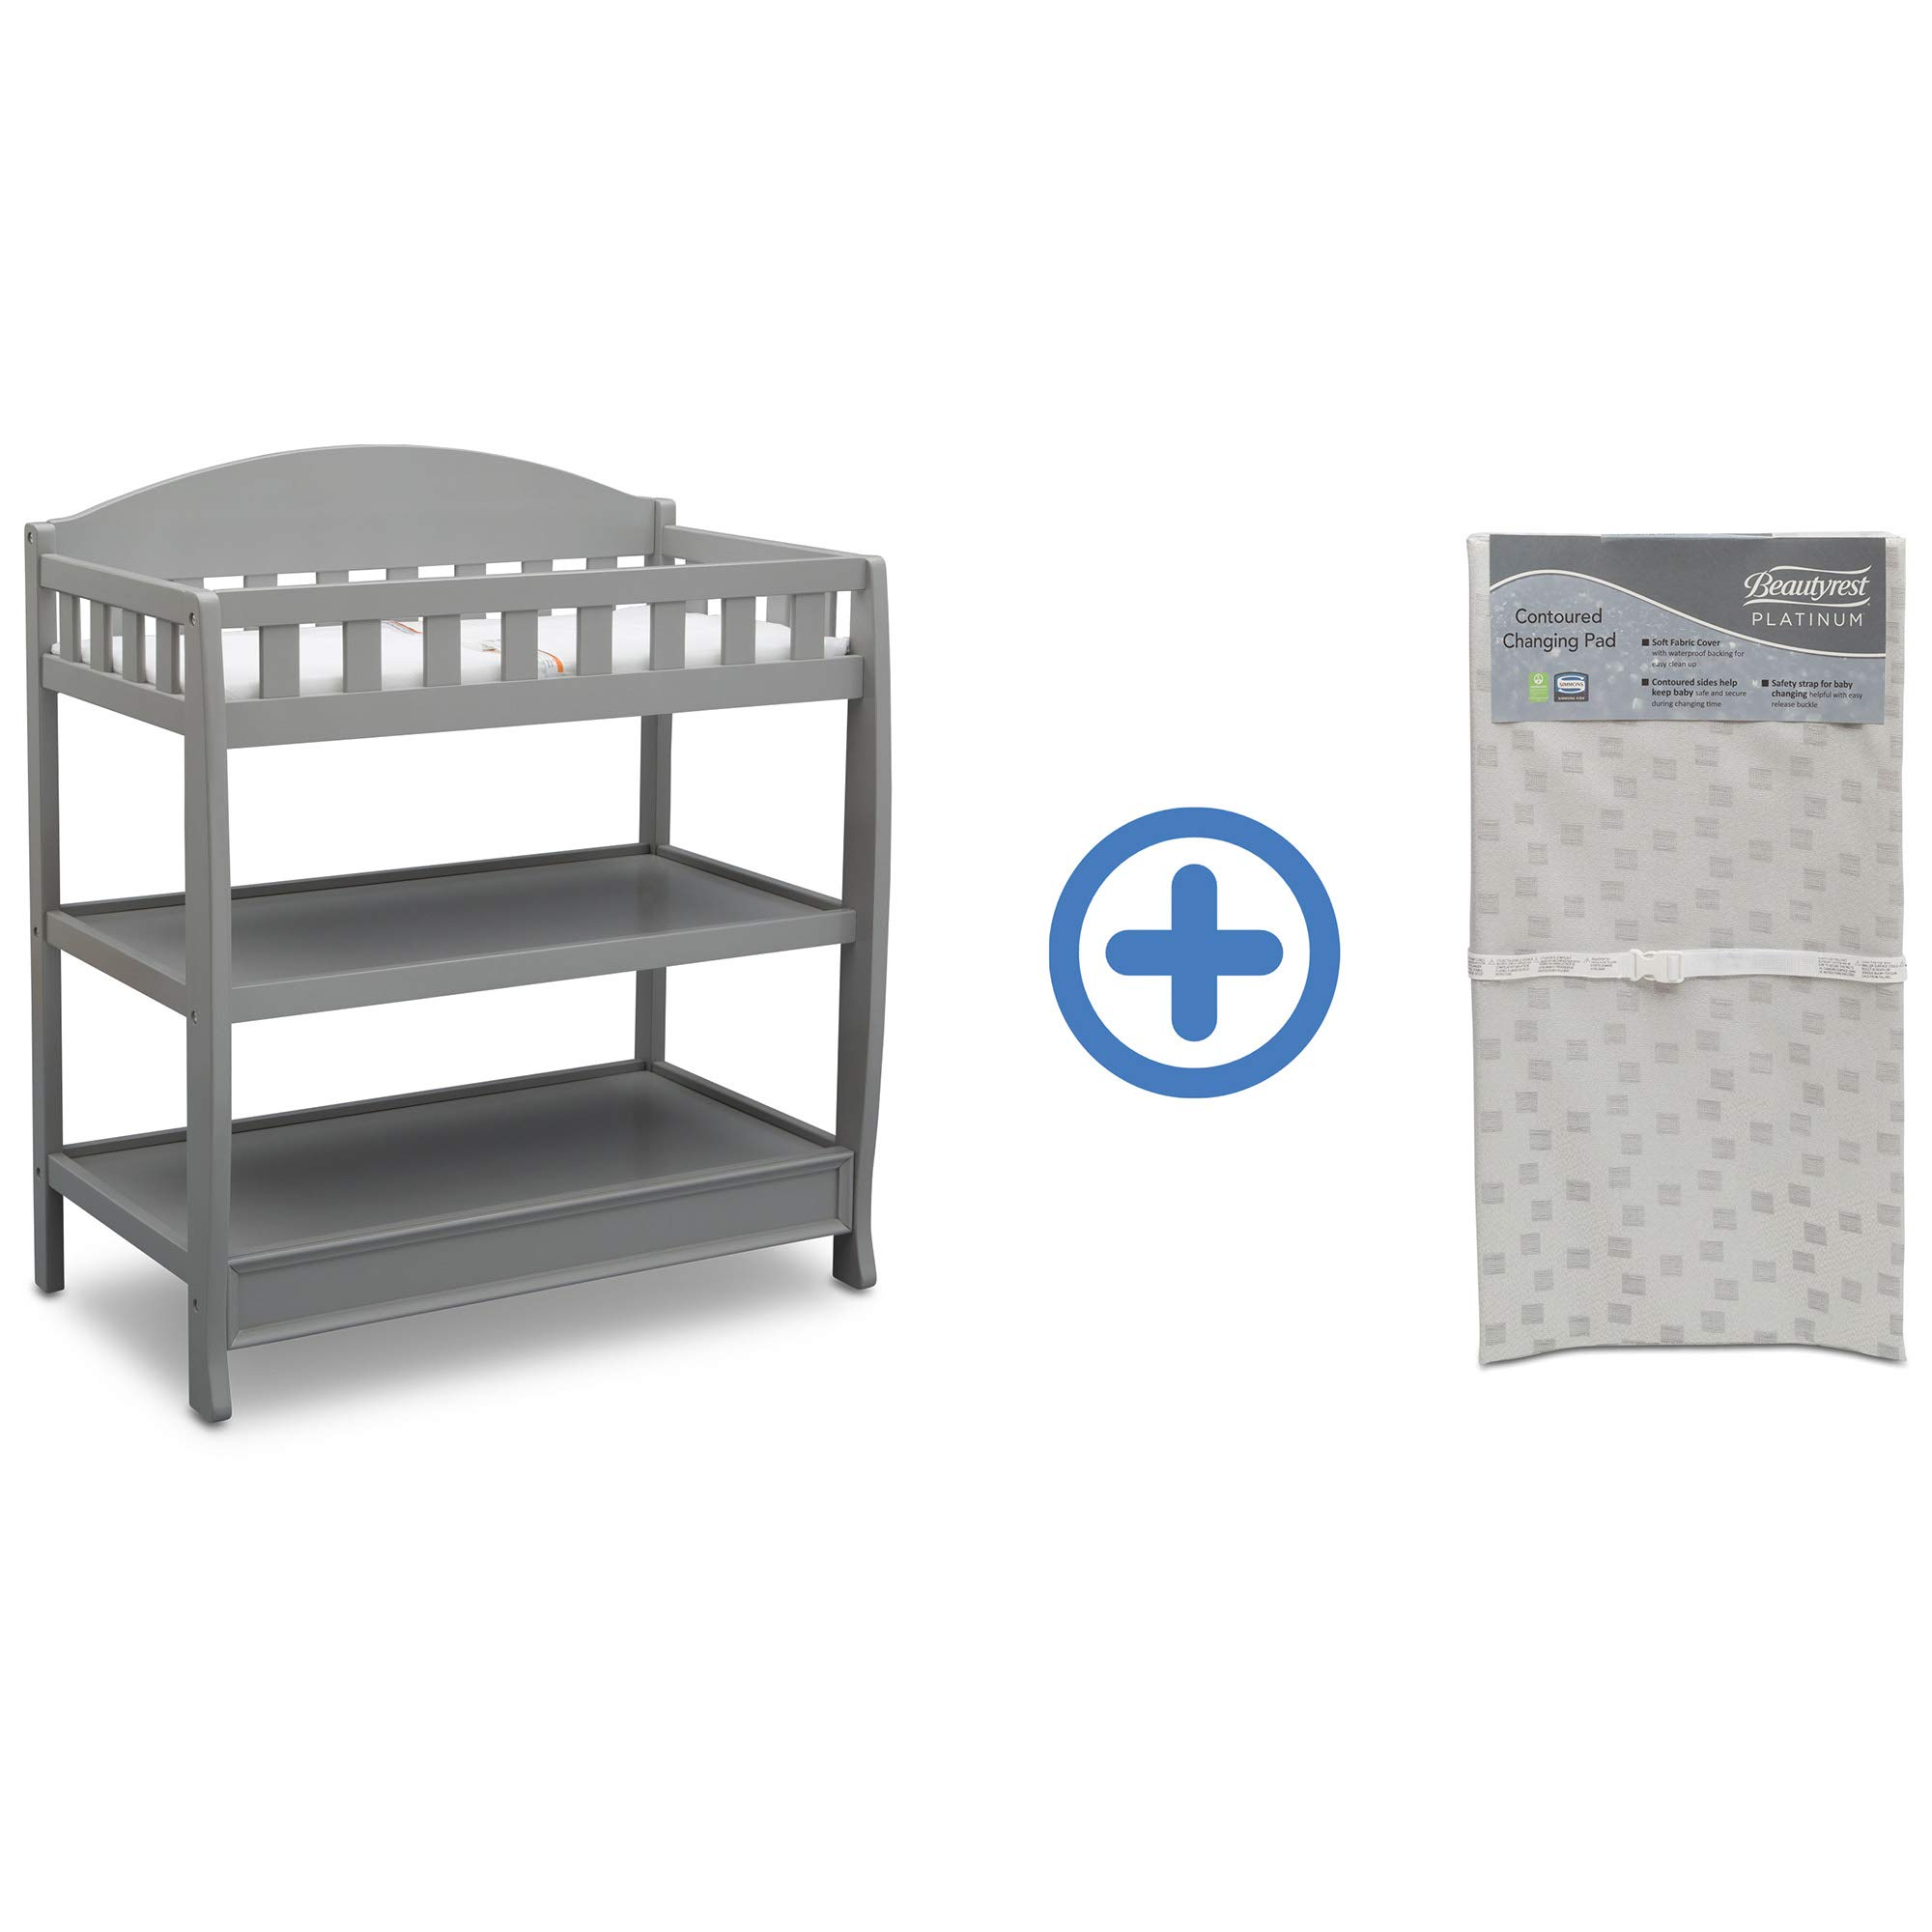 Delta Children Infant Changing Table with Pad, Grey and Waterproof Baby and Infant Diaper Changing Pad, Beautyrest Platinum, White